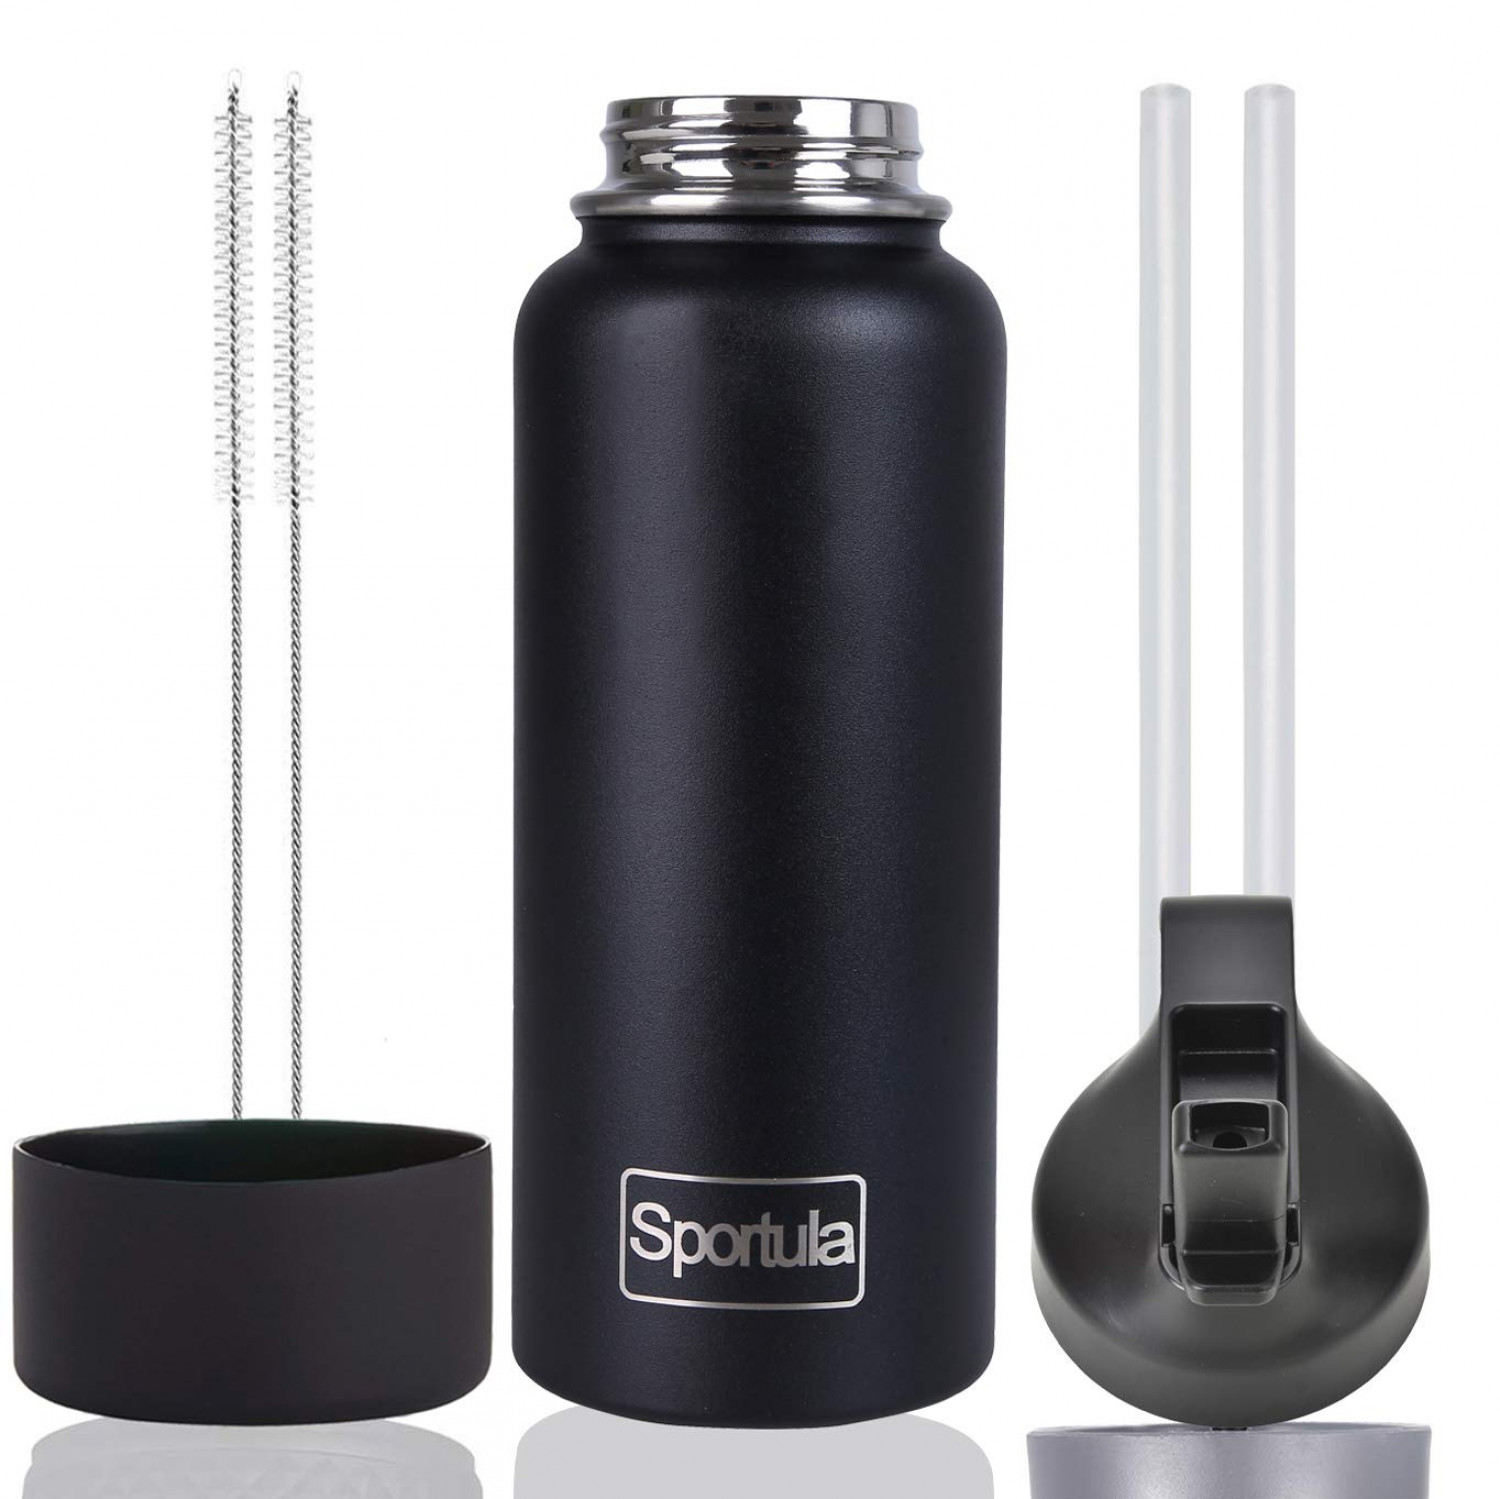 Sportula Water Bottle - Stainless Steel & Vacuum Insulated - Wide Mouth with Straw Lid - 2 Straws & 2 Brushes and 1 Protective Boot Infographic